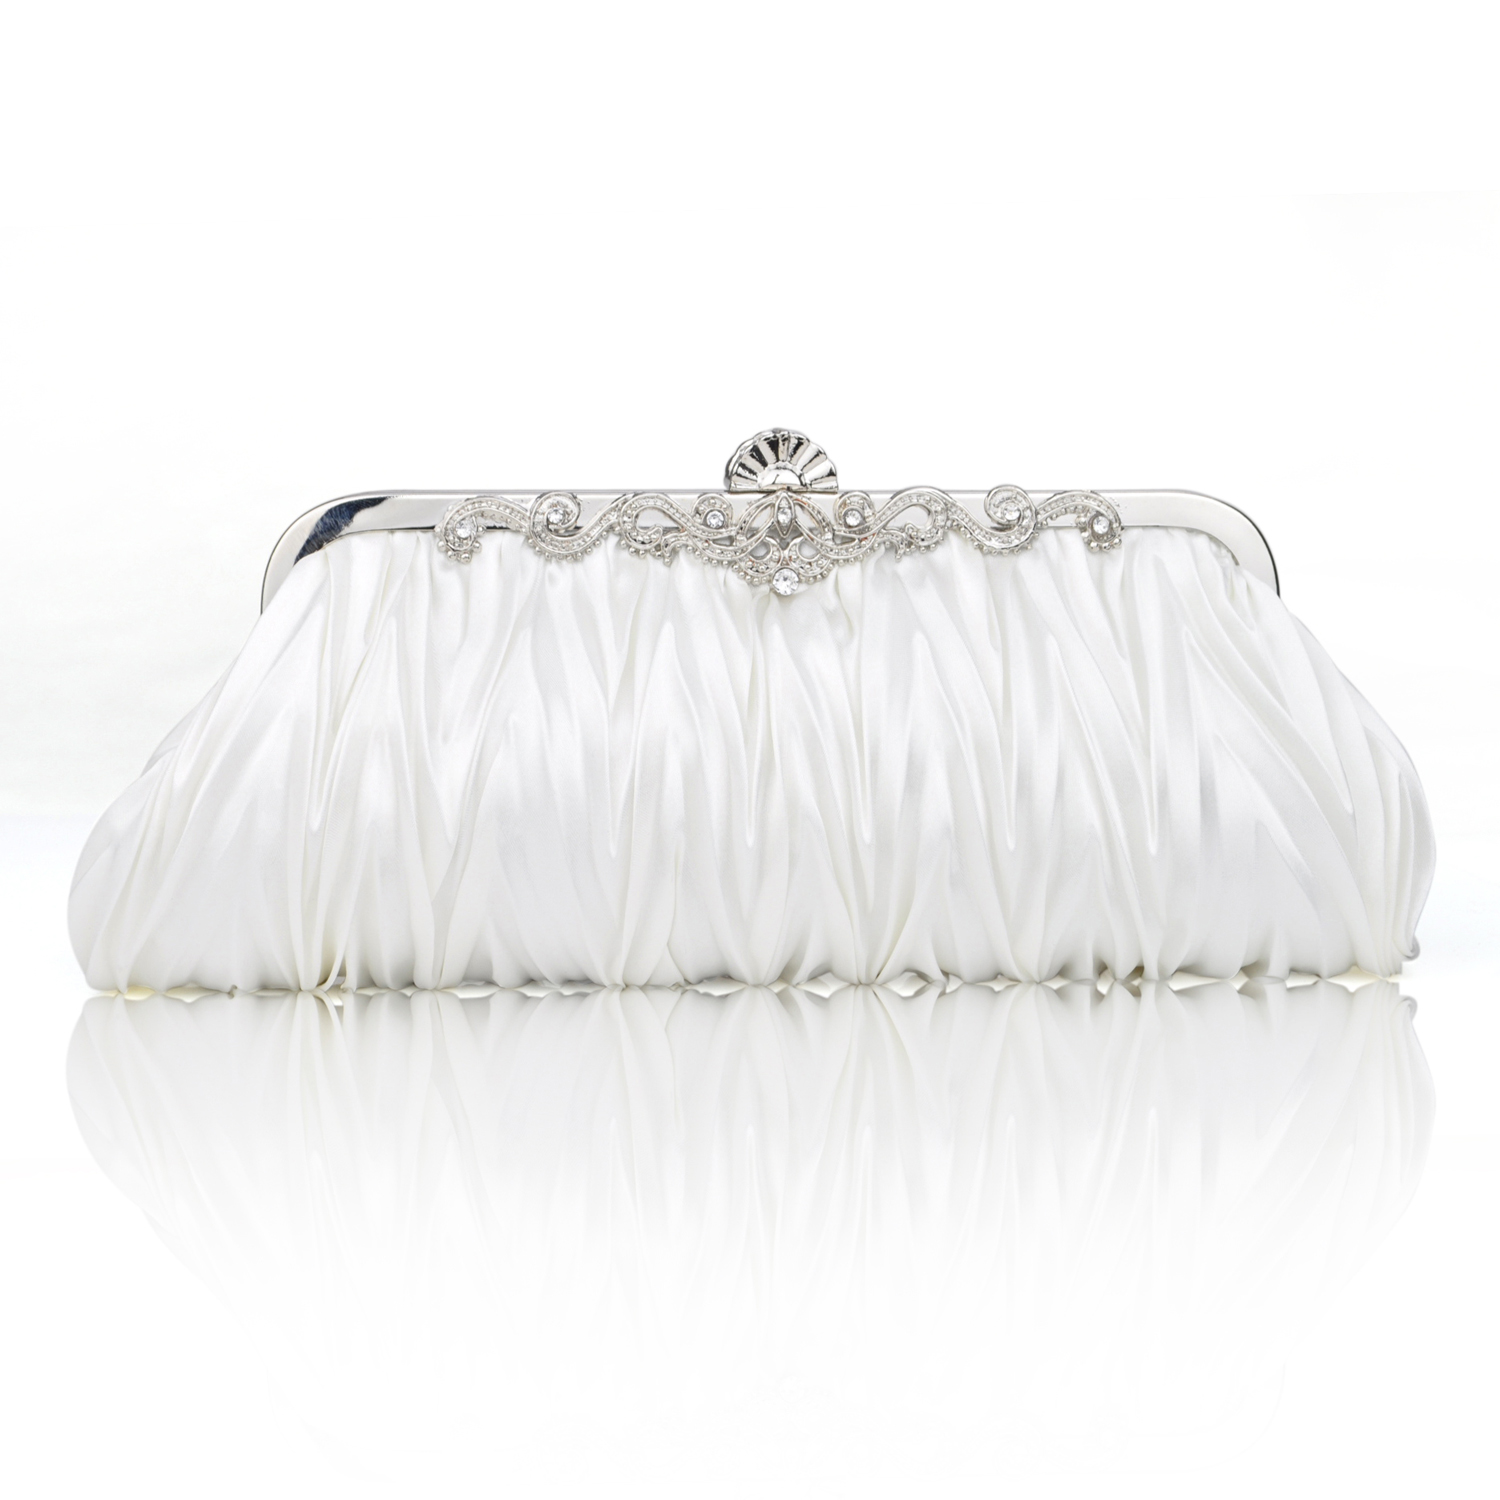 Pleated Satin Clutch, Ivory Evening Handbag, Gift Idea